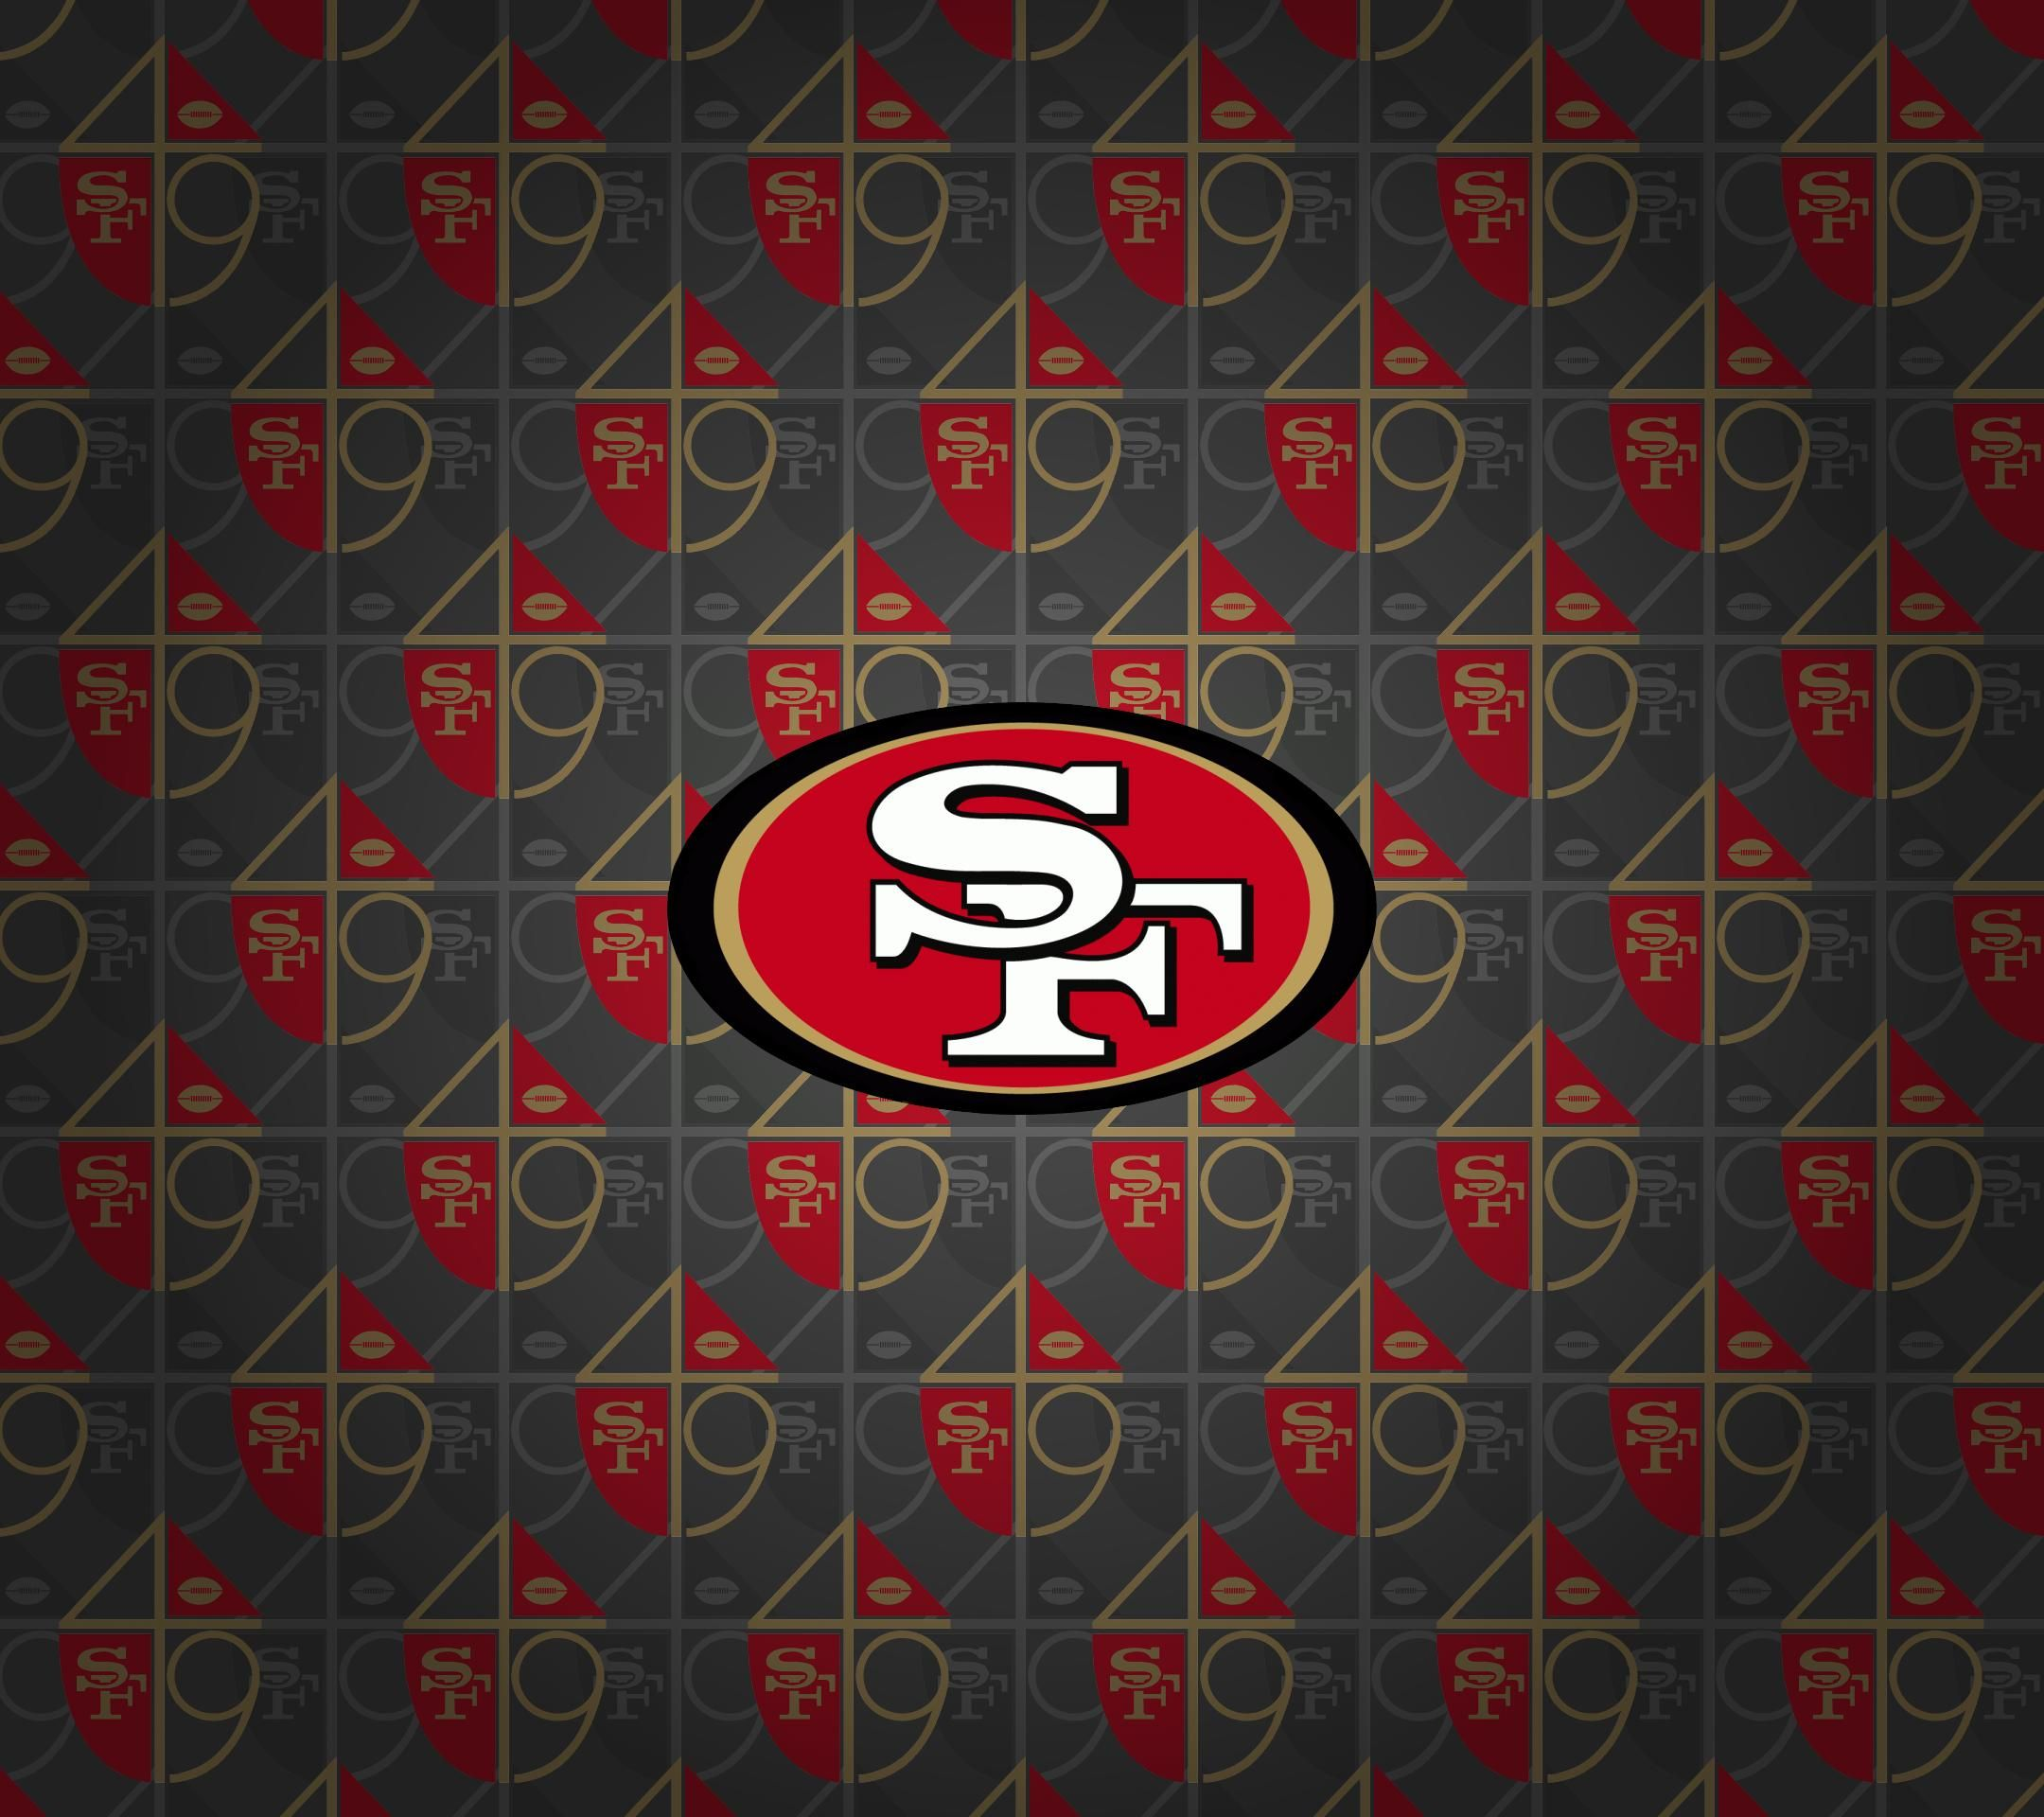 San Francisco 49ers Logo HD Wallpapers (With images) San